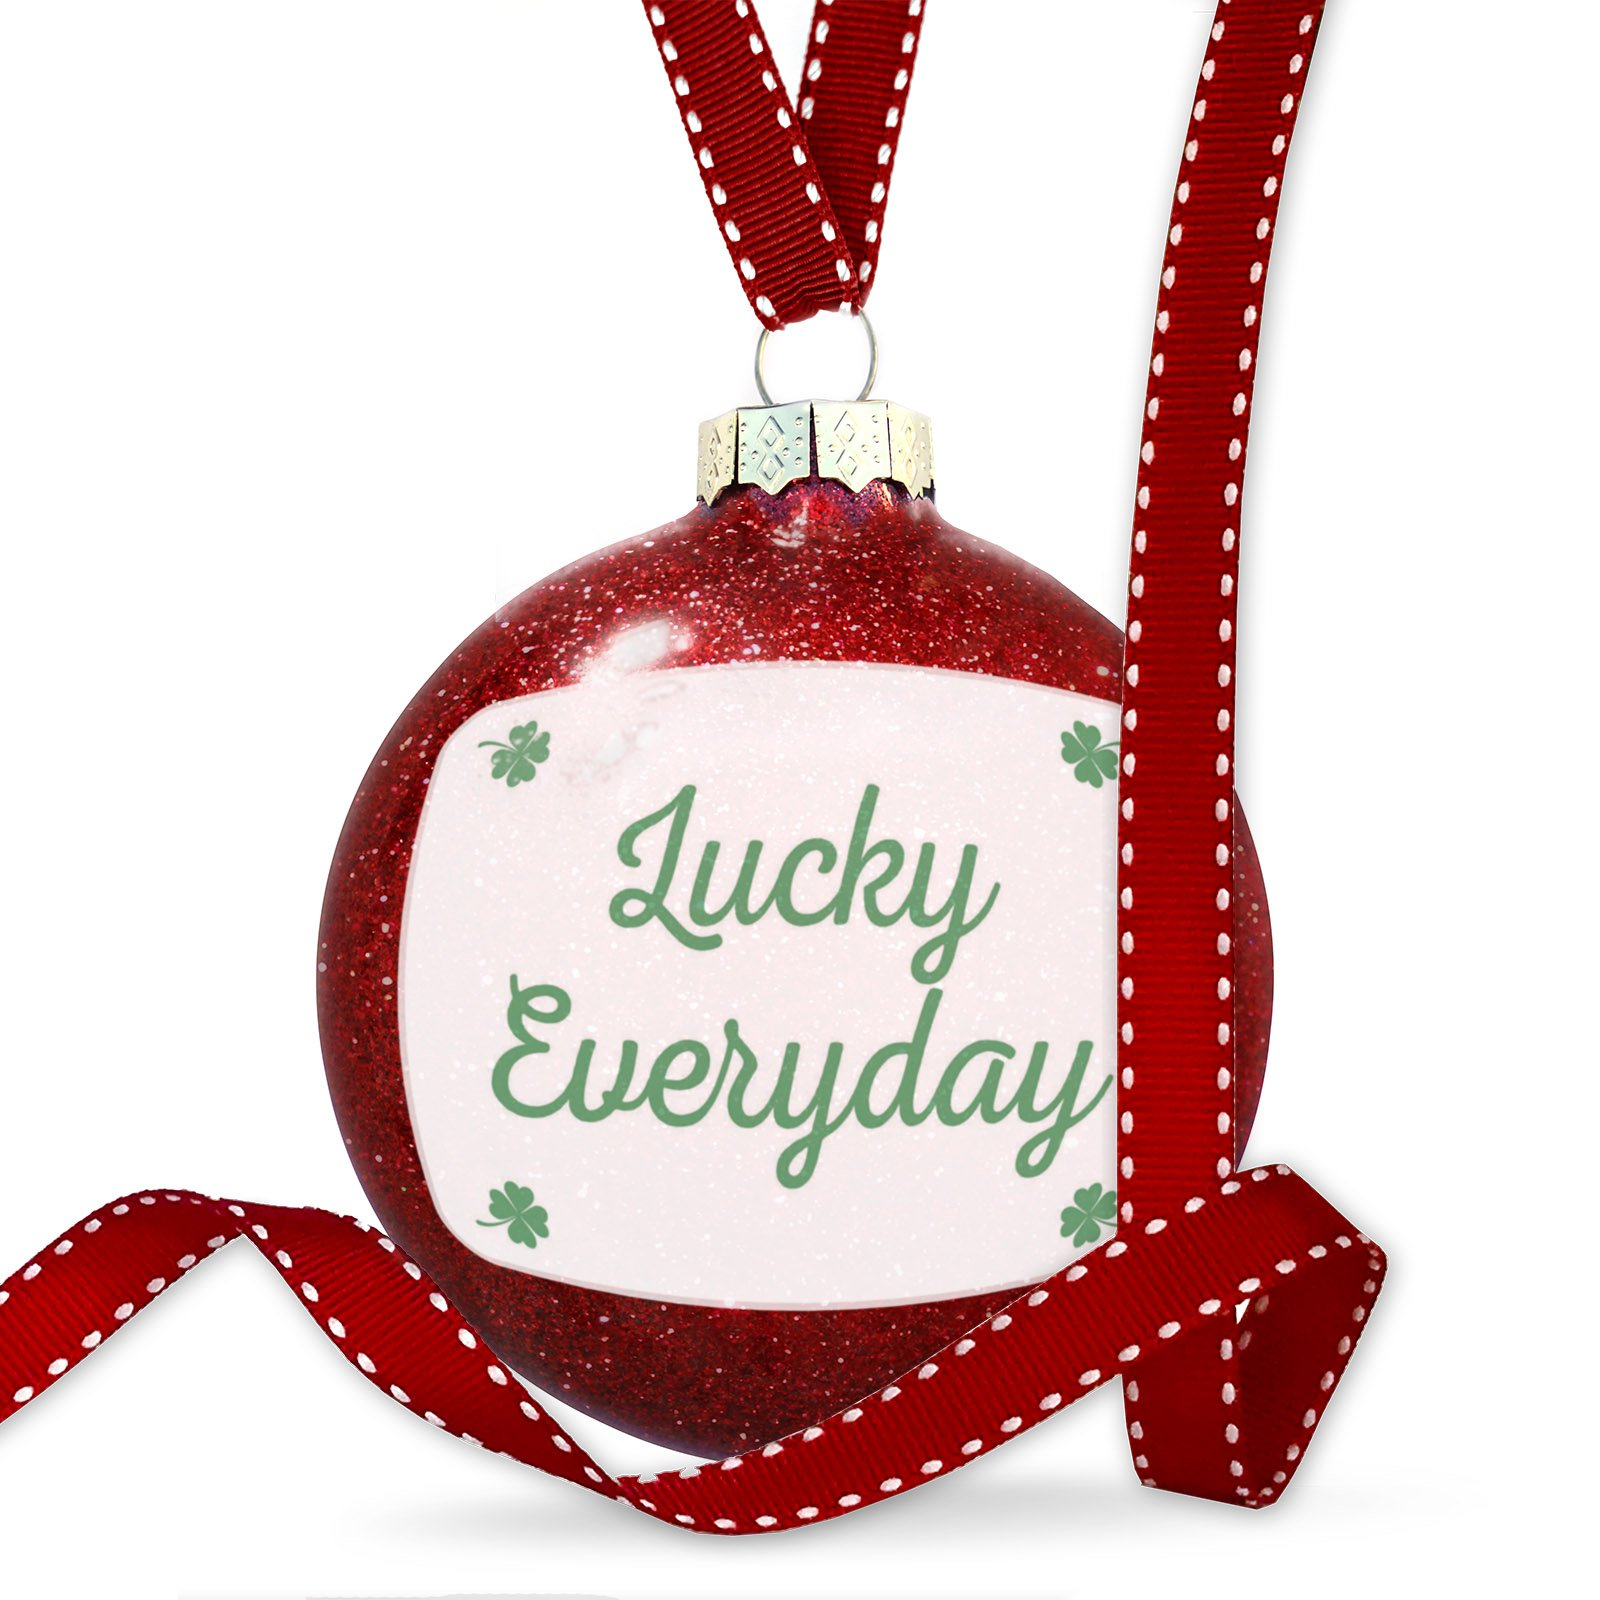 Christmas Decoration Lucky Everyday St. Patrick's Day Simple Four Leaf Clovers Ornament by NEONBLOND